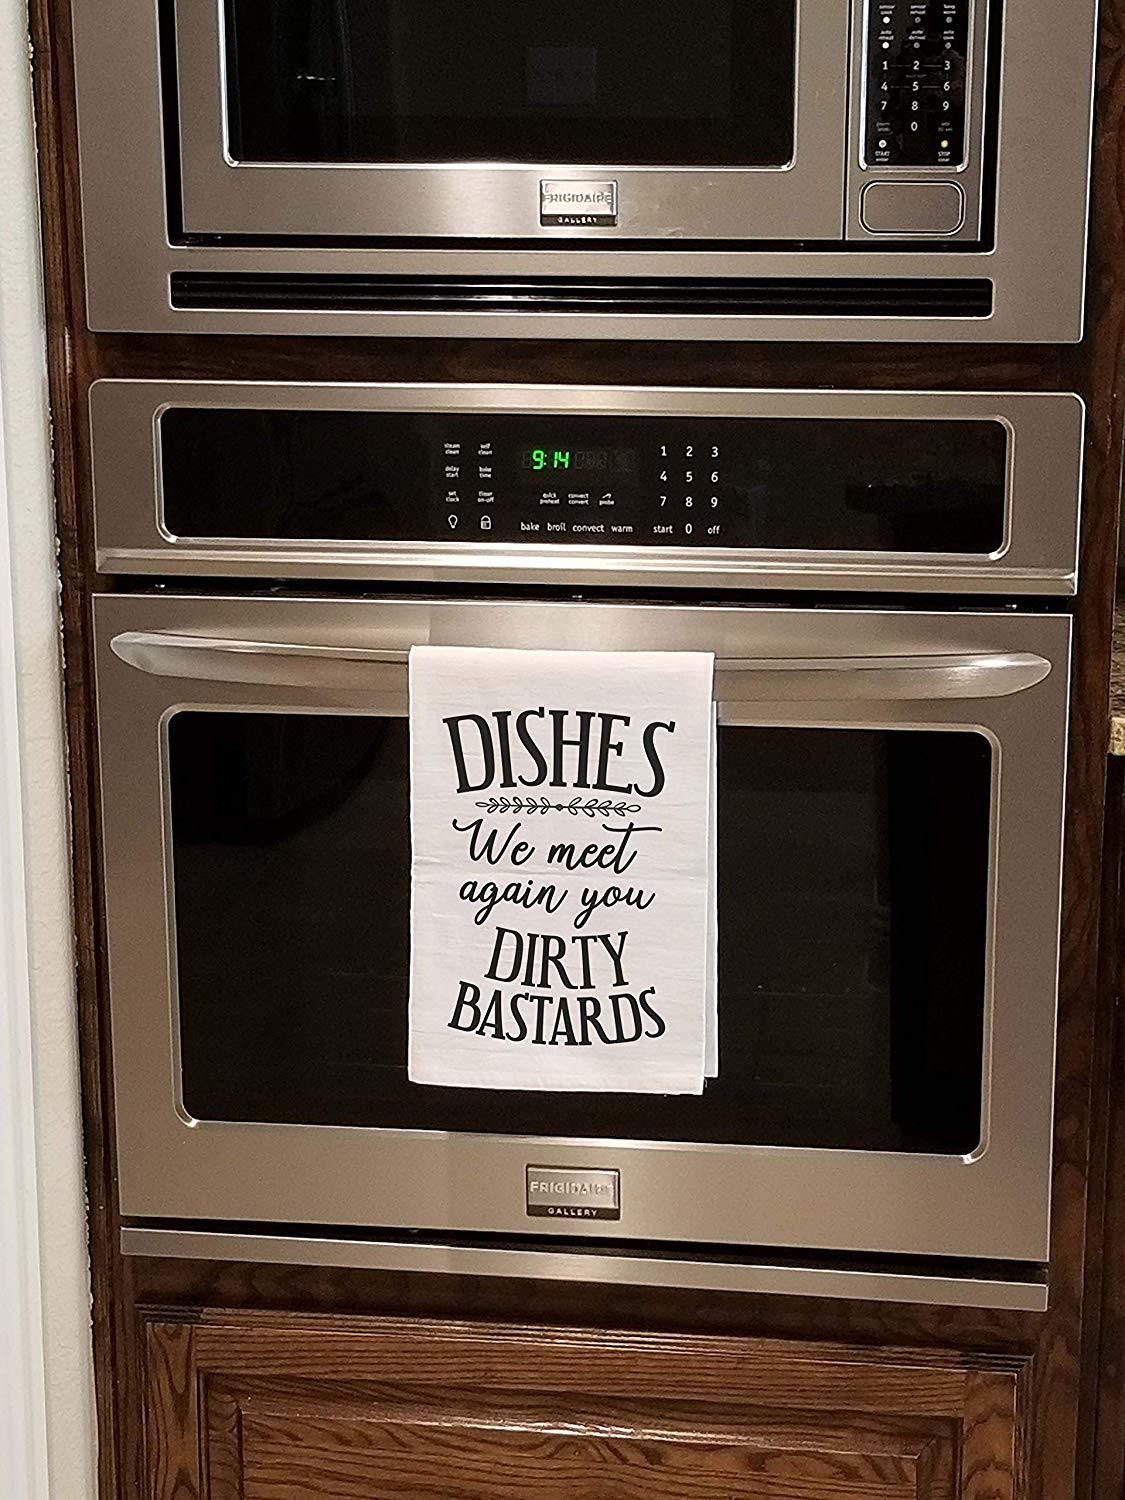 Extremely Funny Kitchen Dish Towel That Is Sure To Make You Smile